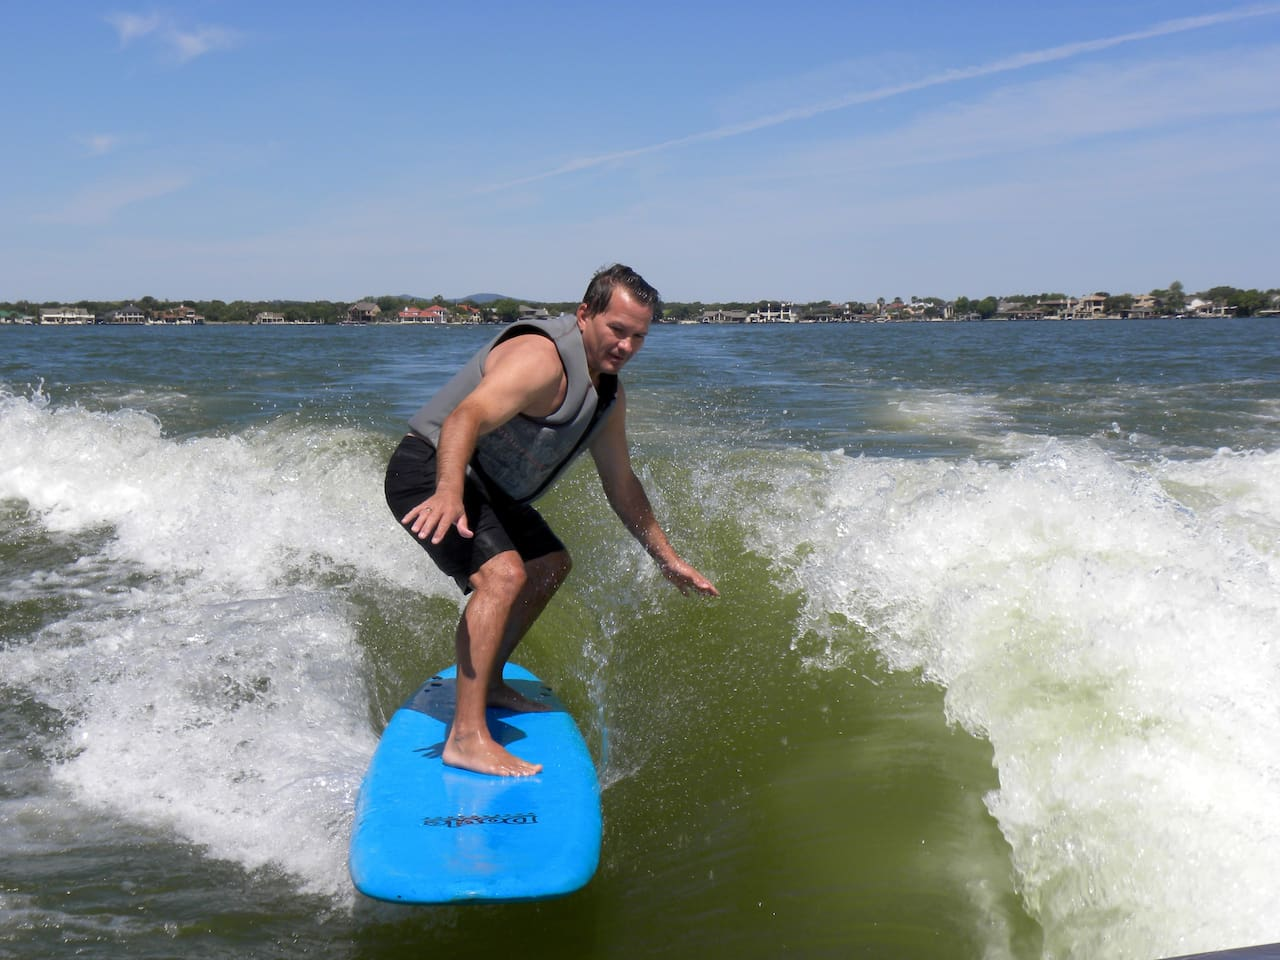 Surfing the beautiful waters of LBJ